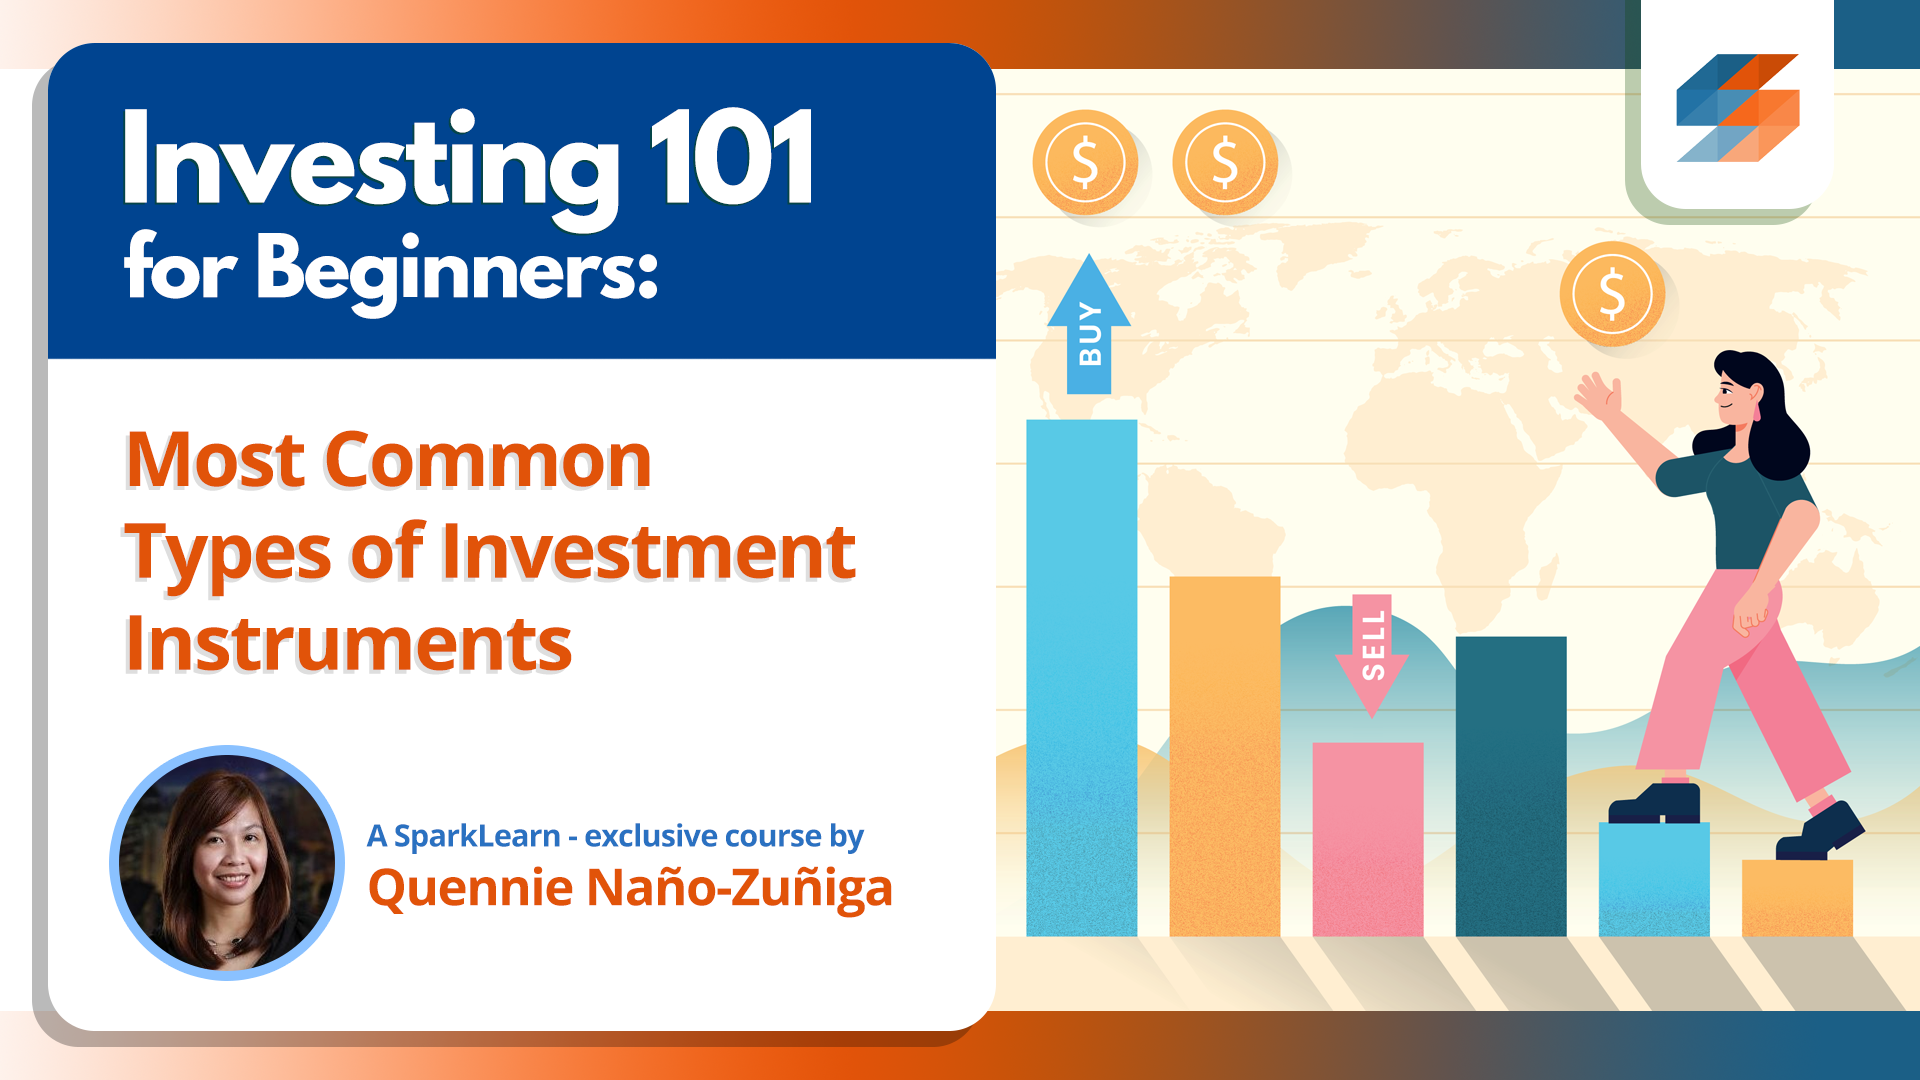 Investing 101 for Beginners: Most Common Types of Investment Instruments